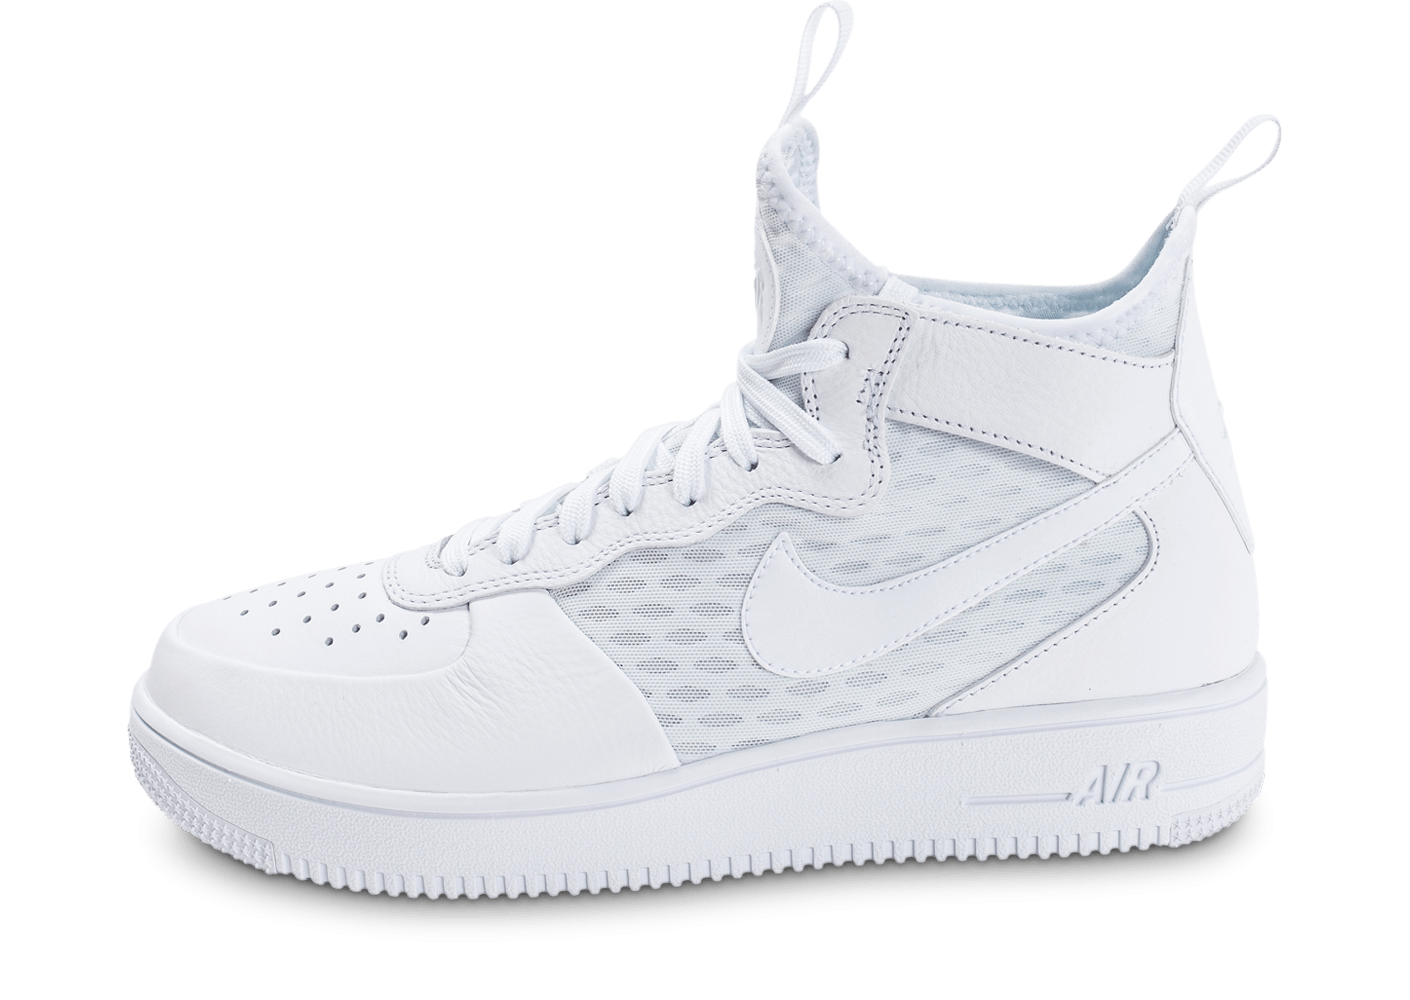 nike air force 1 ultraforce mid blanche chaussures baskets homme chausport. Black Bedroom Furniture Sets. Home Design Ideas